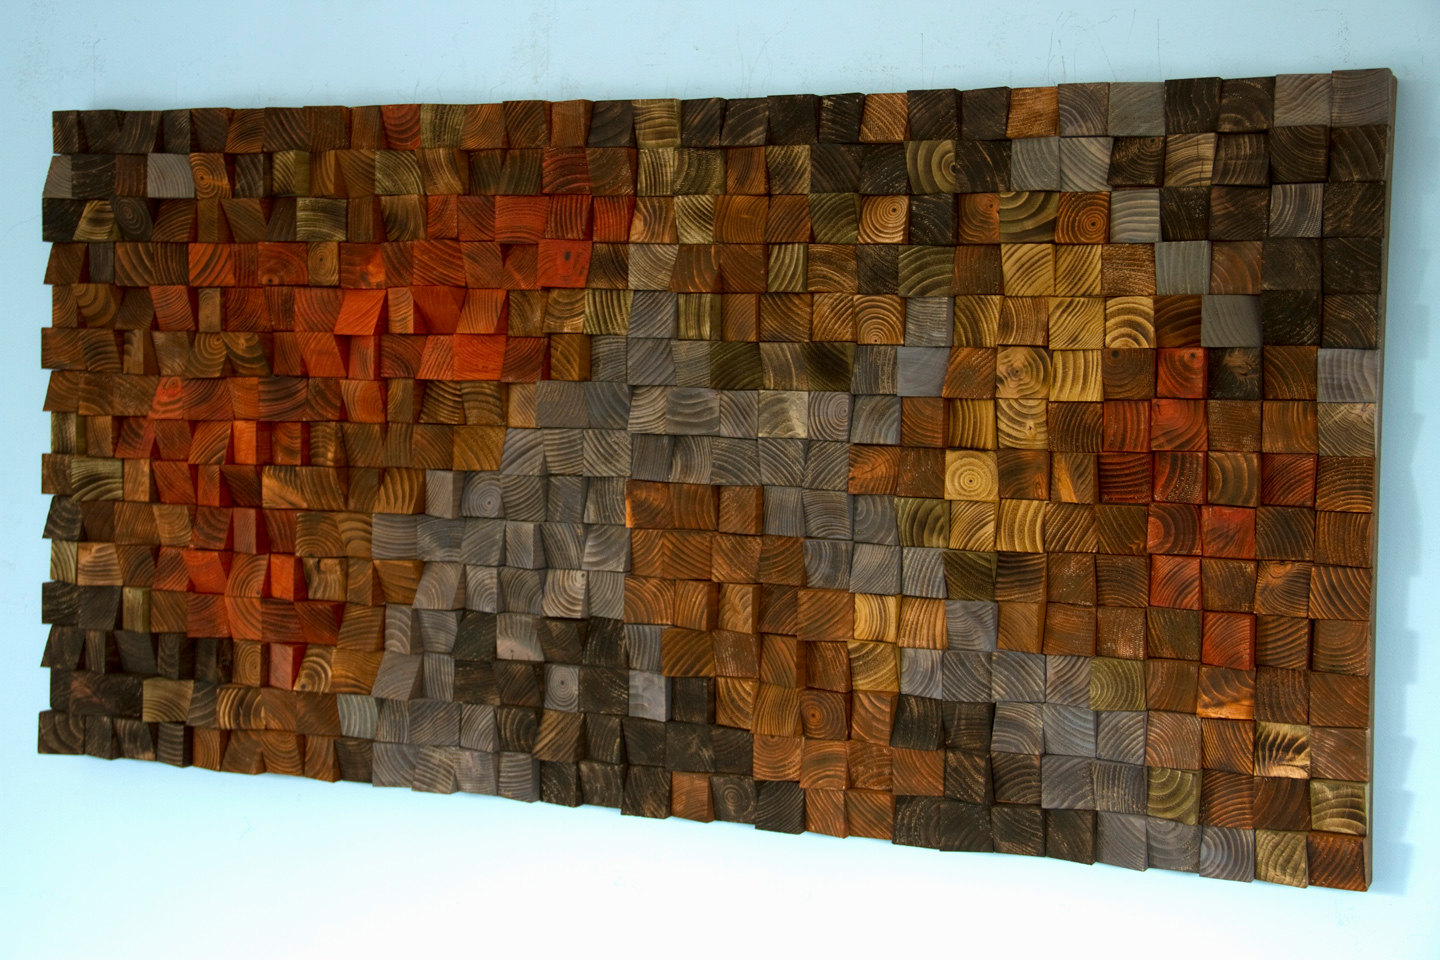 Art Painted On Wood Rustic Wood Art Wood Wall Sculpture Abstract Painting On